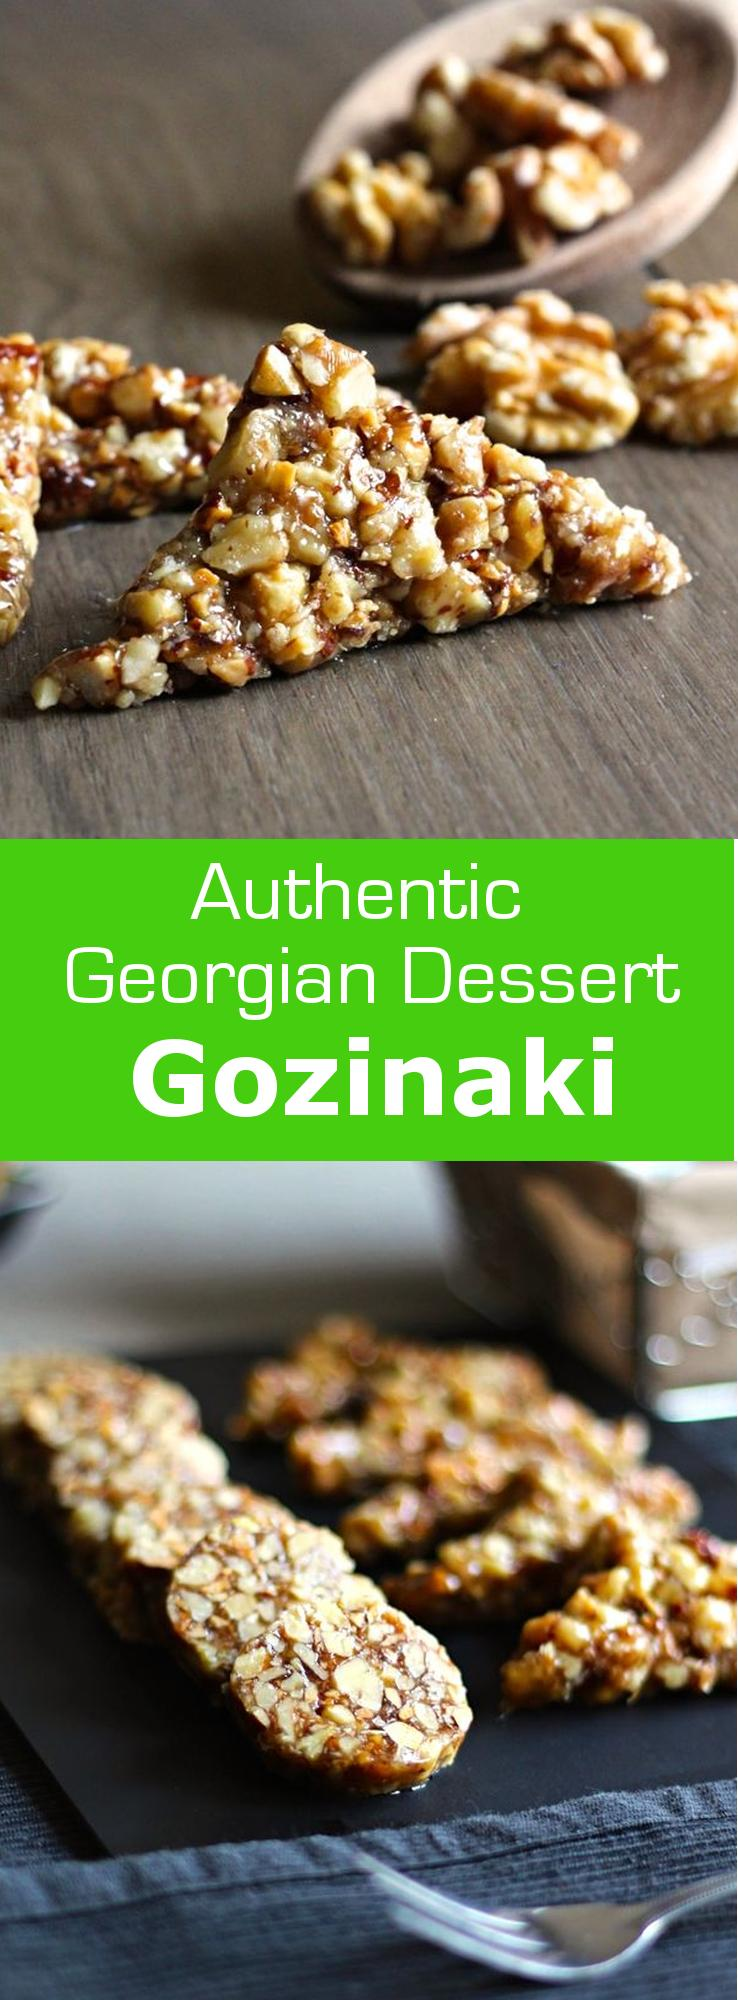 Gozinaki, a nougat made from nuts and honey, is a Georgian treat traditionally made for Christmas and New Year. #dessert #vegetarian #glutenfree #georgia #georgian